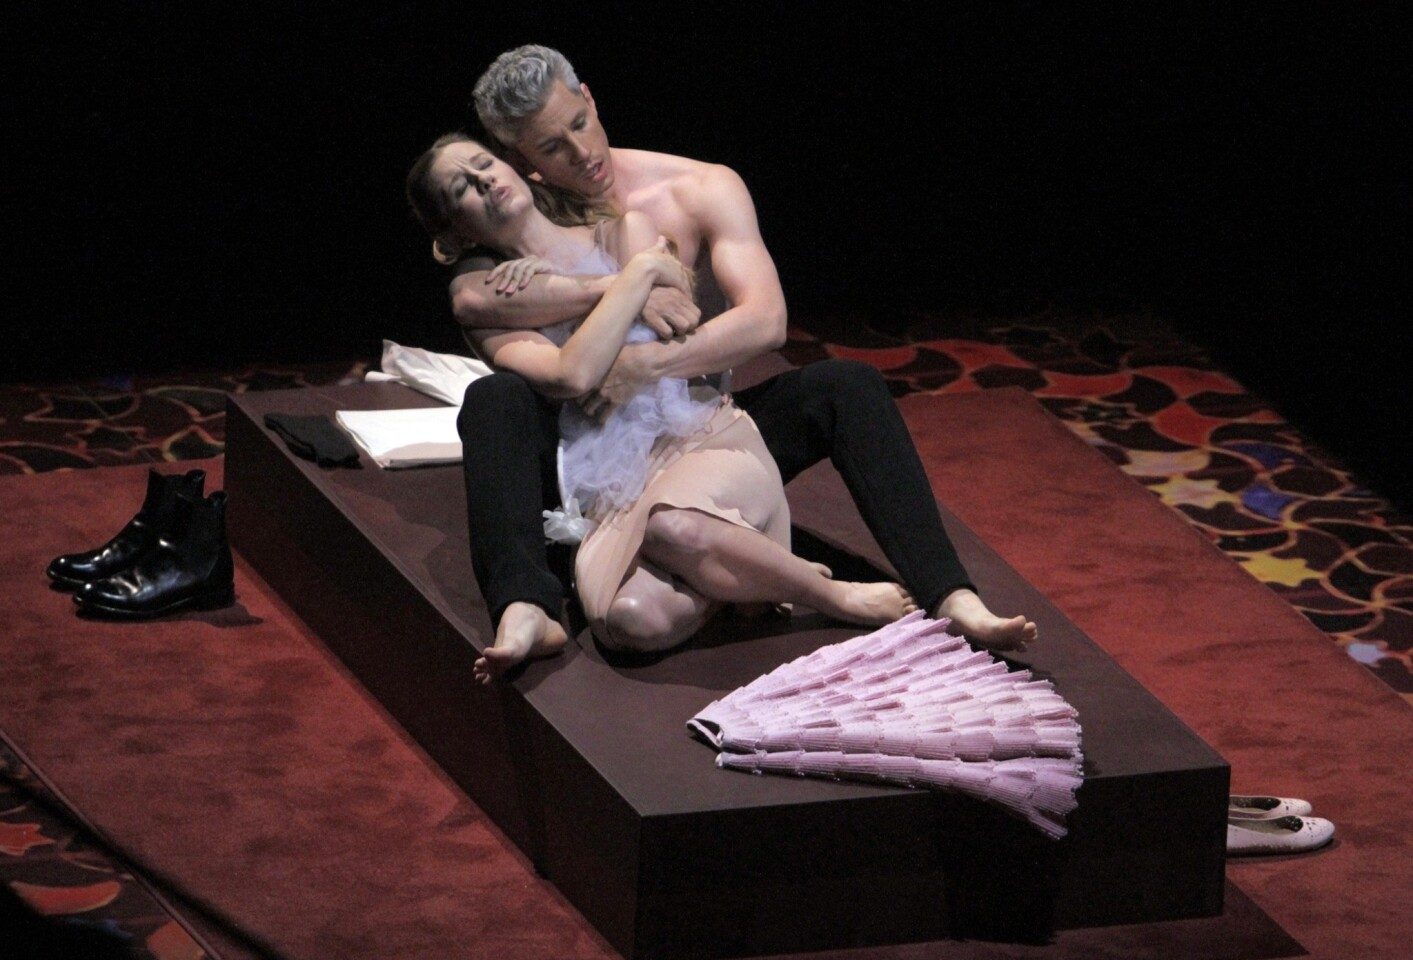 """Malin Christensson as Susanna and Edwin Crossley-Mercer as Figaro in opening night of L.A. Philharmonic's production of the opera """"Marriage of Figaro"""" at Walt Disney Concert Hall."""